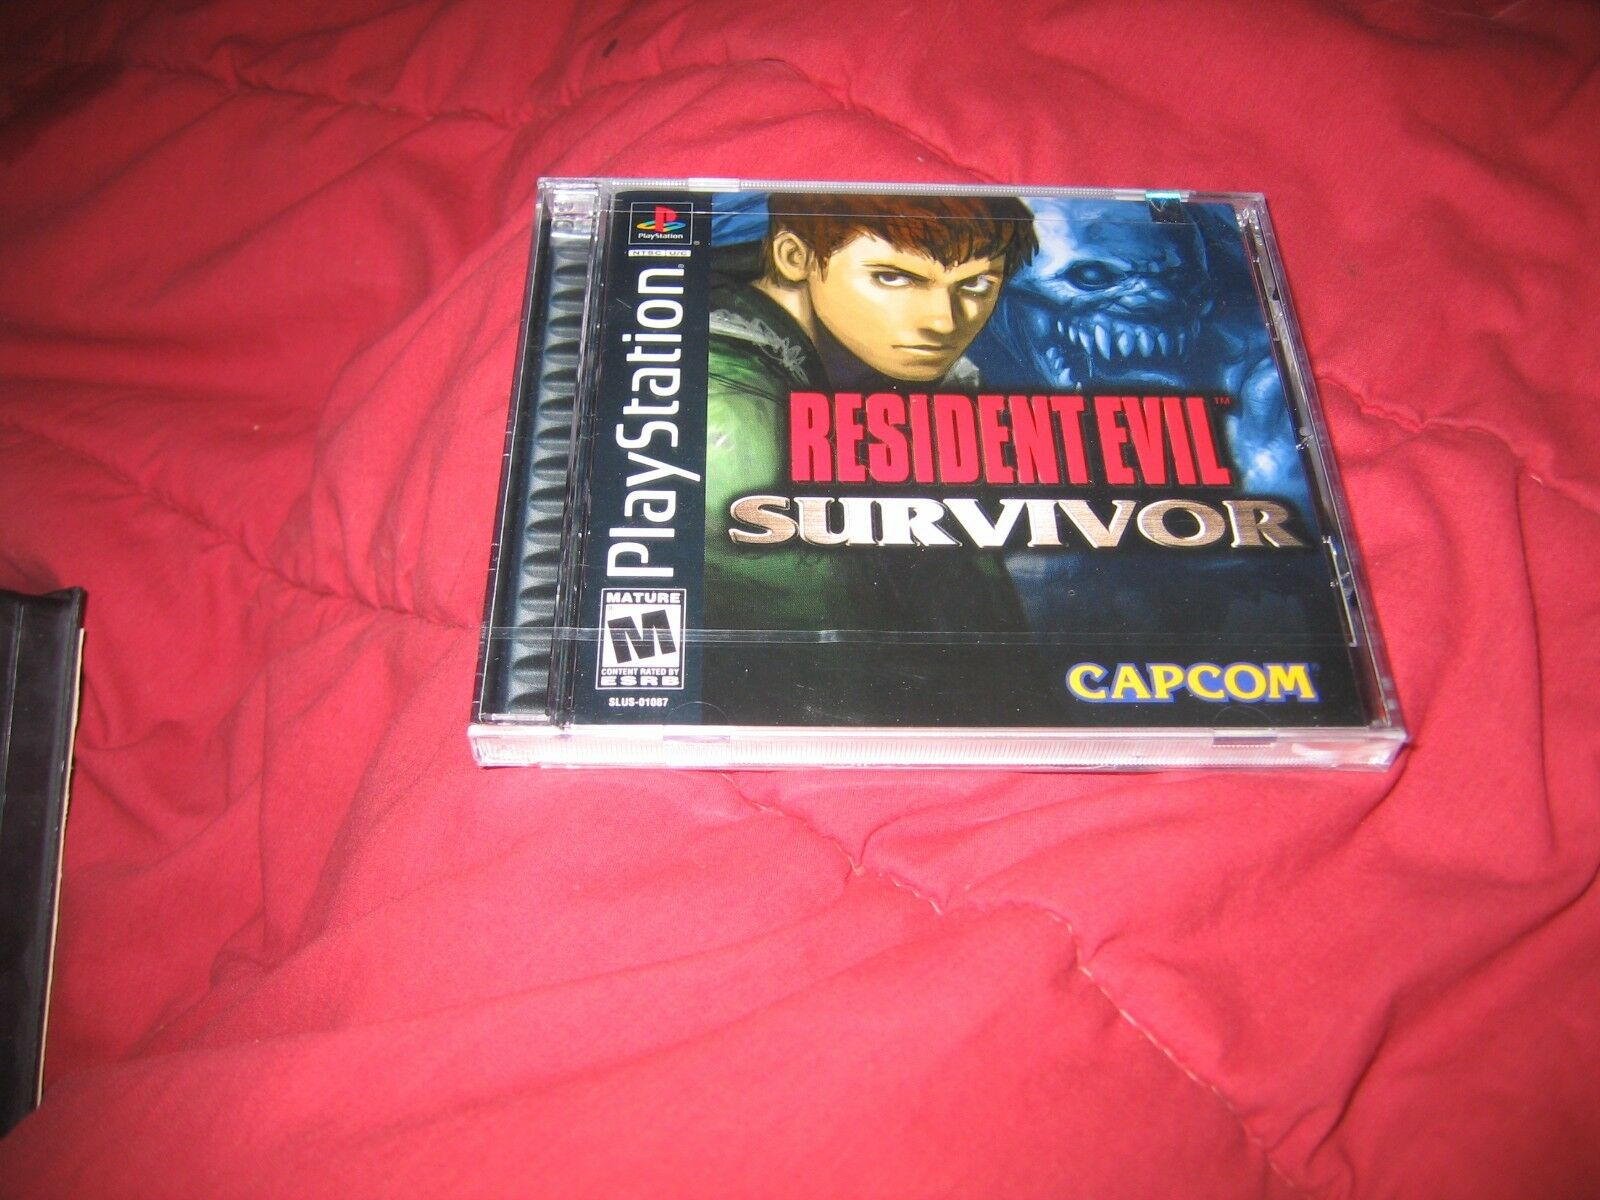 $109.99 - Sony PlayStation Resident Evil Survivor Brand New Factory Sealed PS1